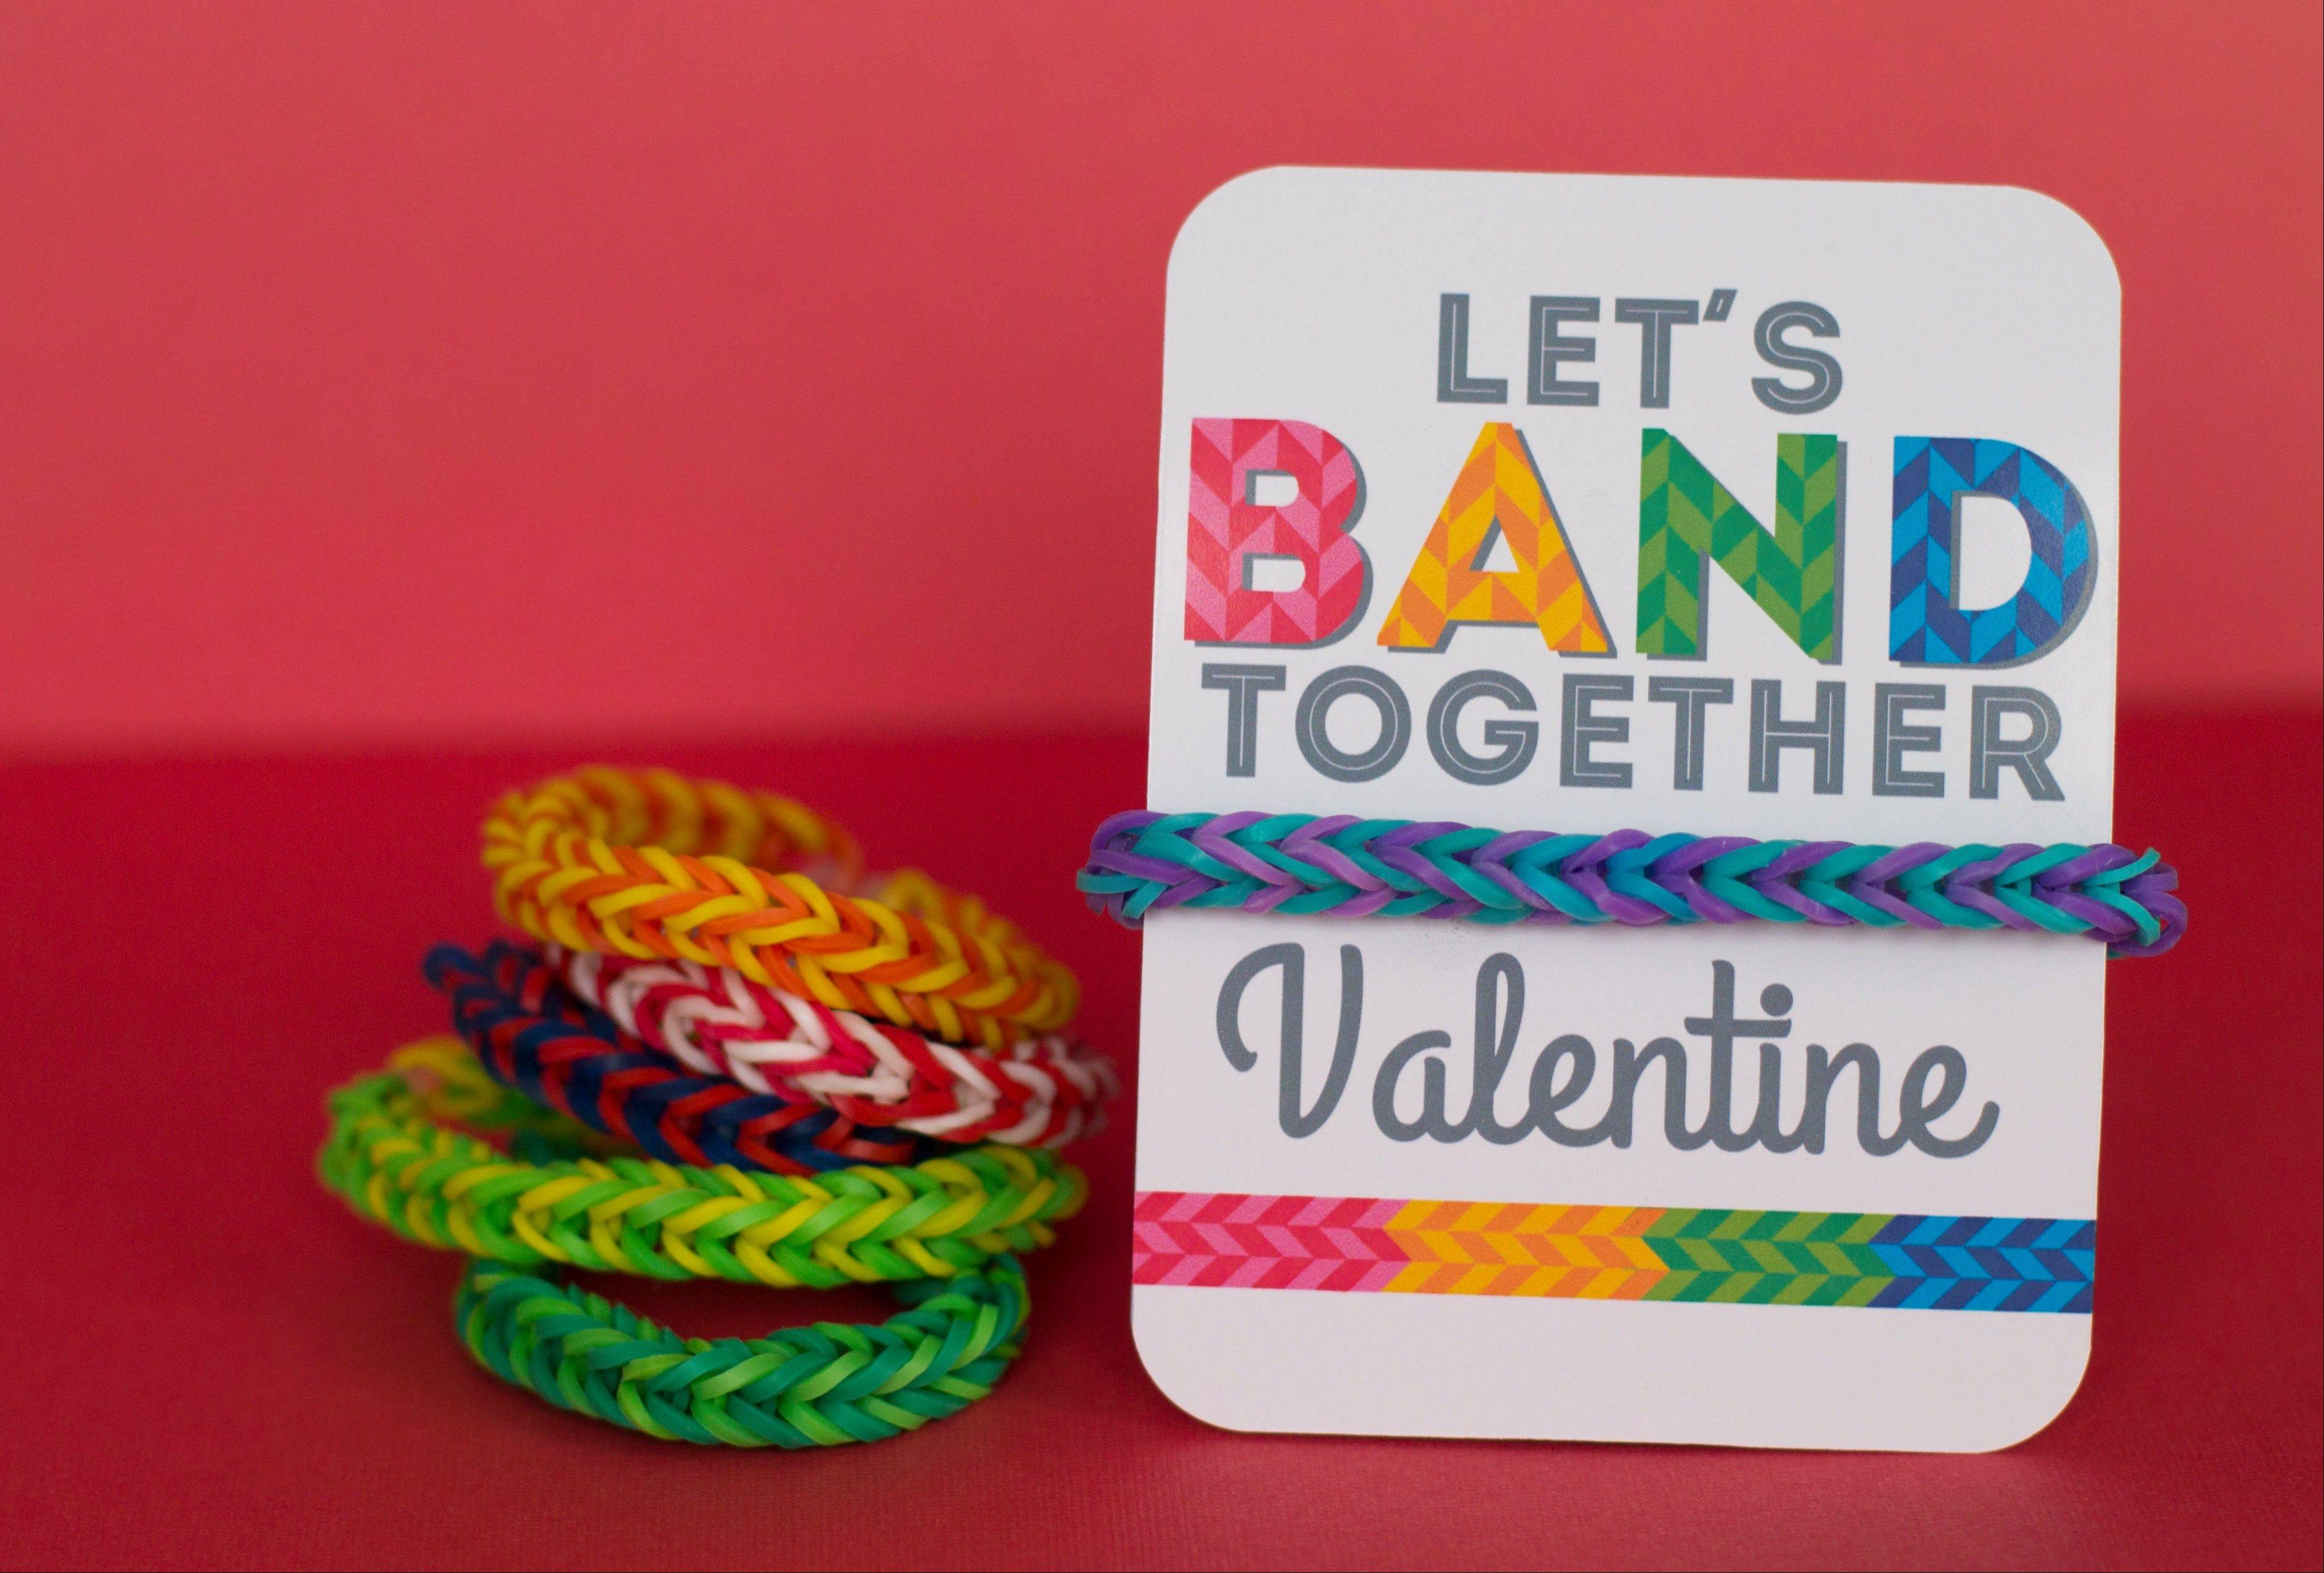 Turn trendy rubber band bracelets into Valentines by wrapping them around cards adorned with a silly pun.